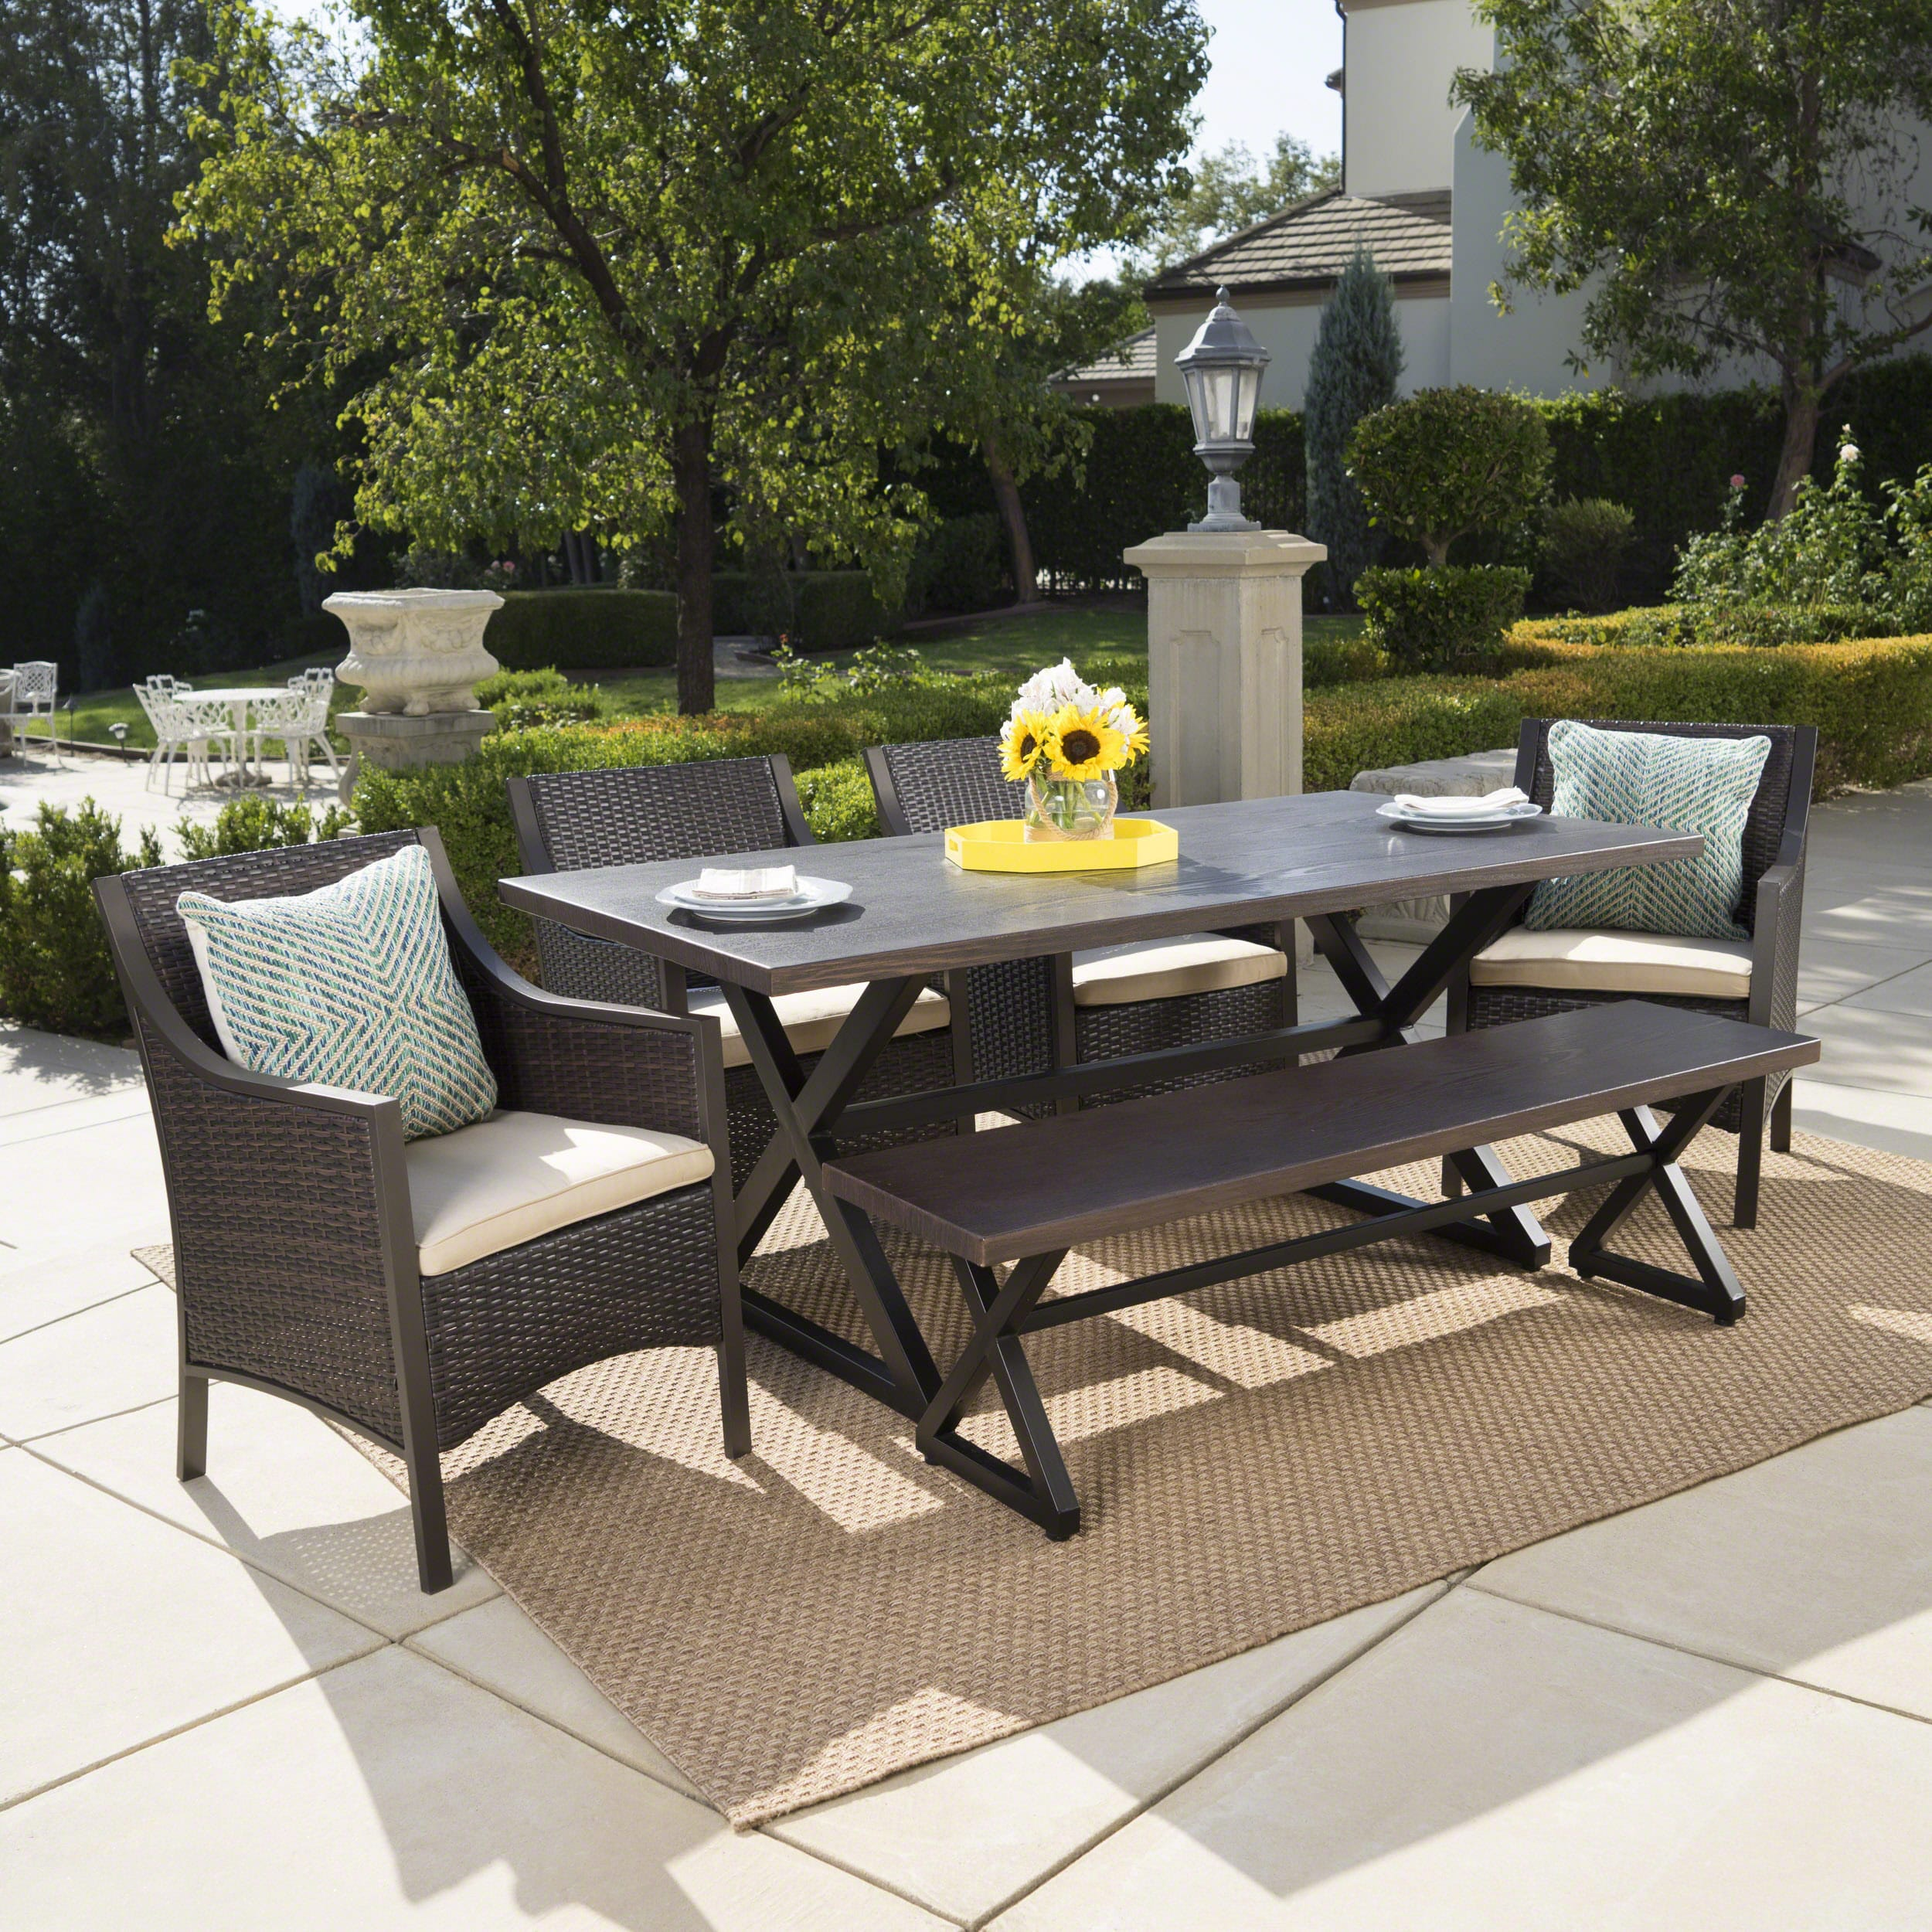 Christopher Knight Home Liona Outdoor 6-piece Rectangle Aluminum Wicker Dining Set with Cushions by